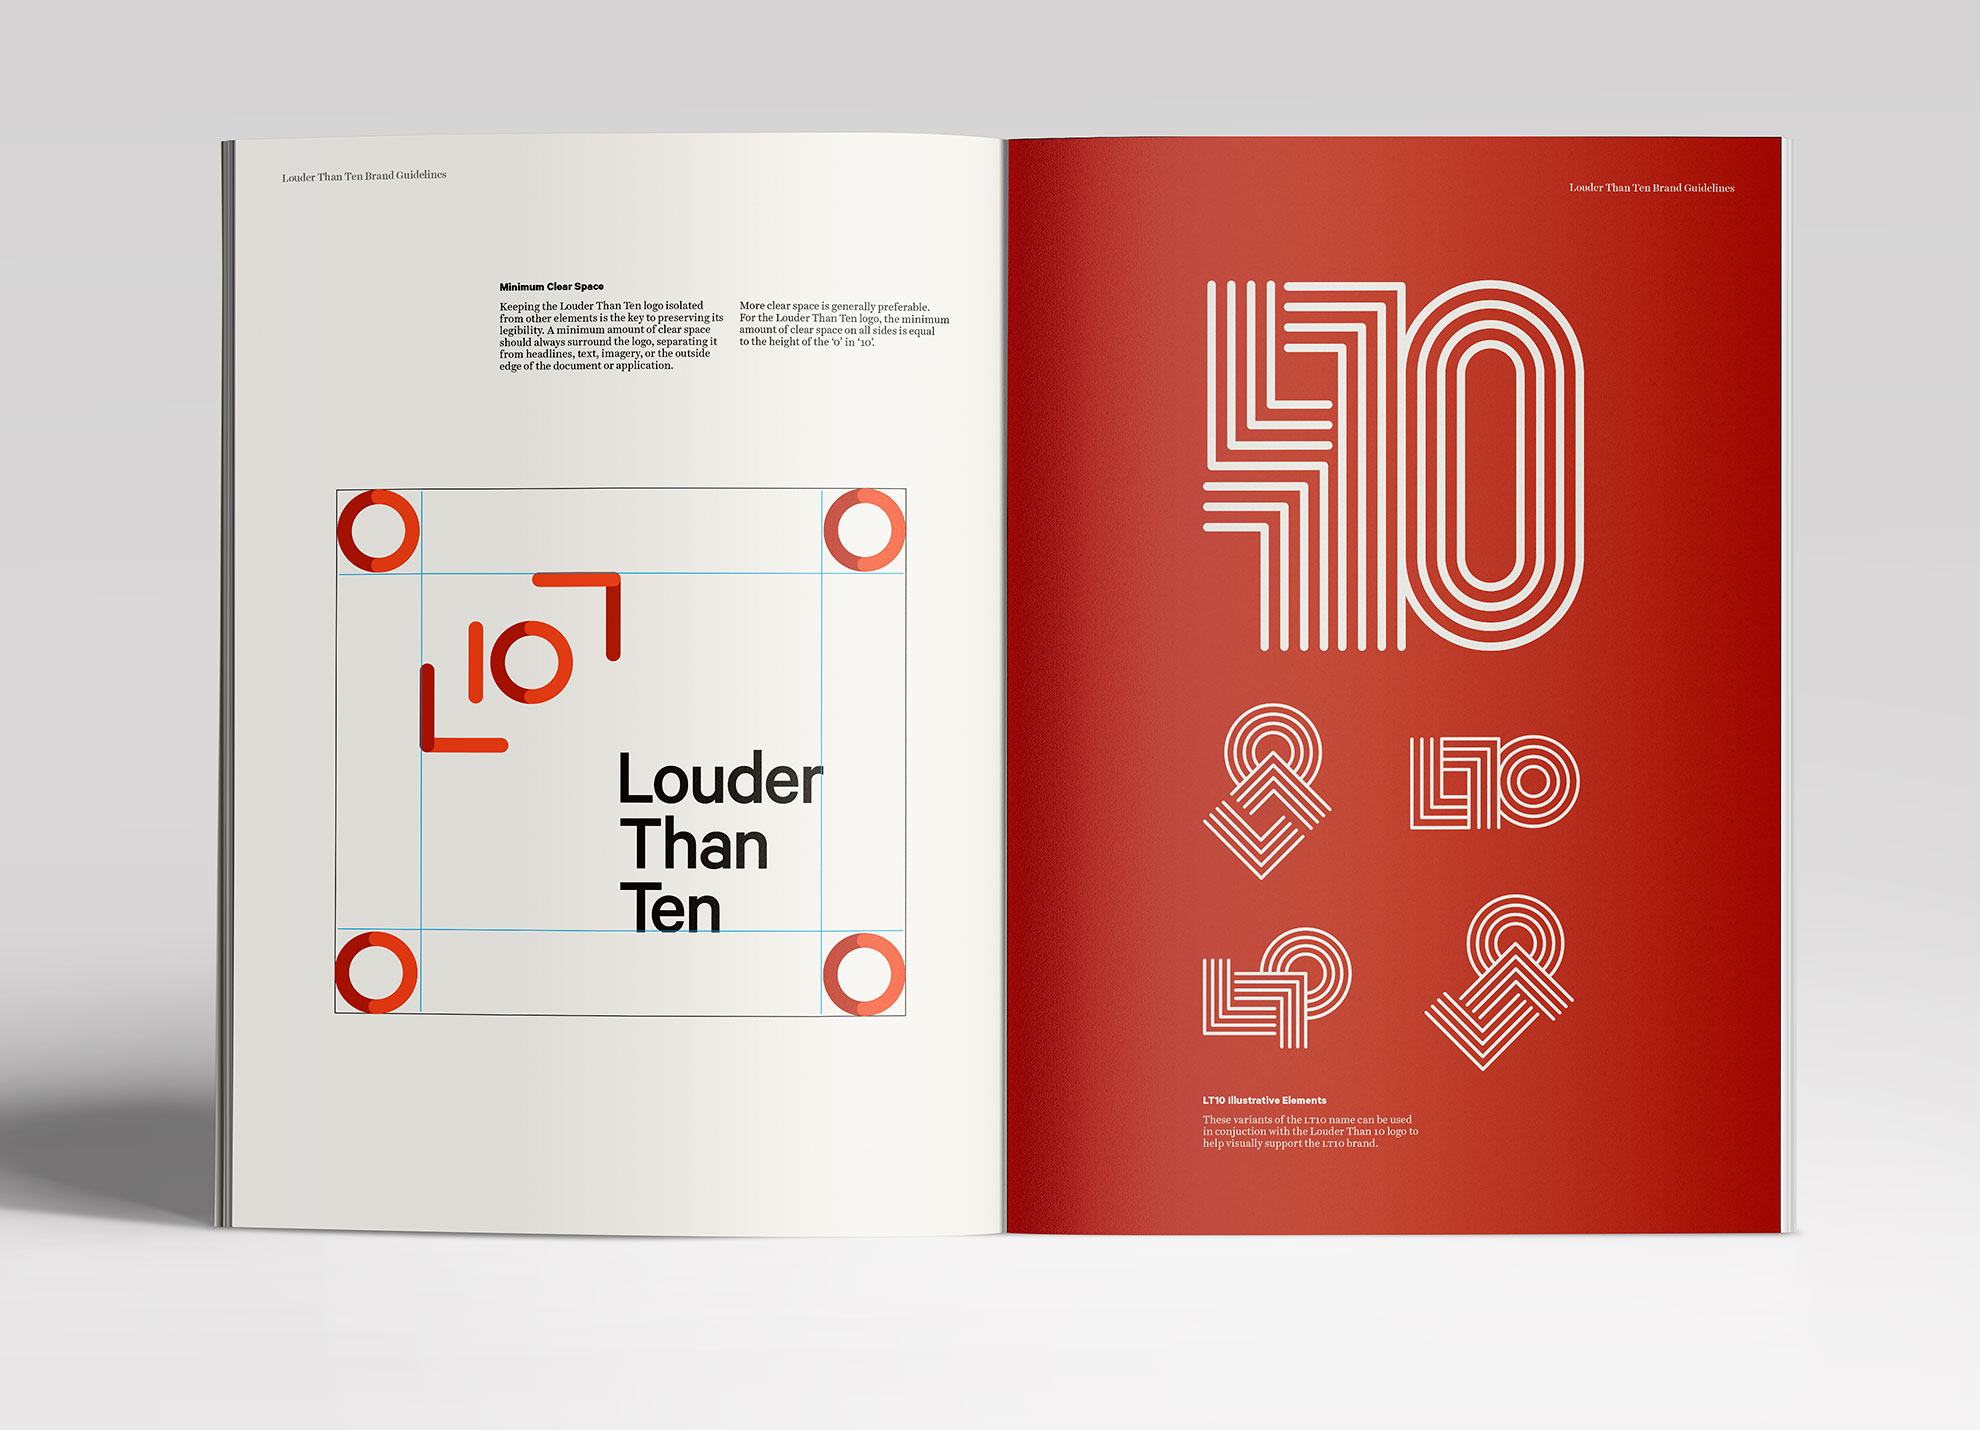 Louder Than 10 – Jonathan Wood Design